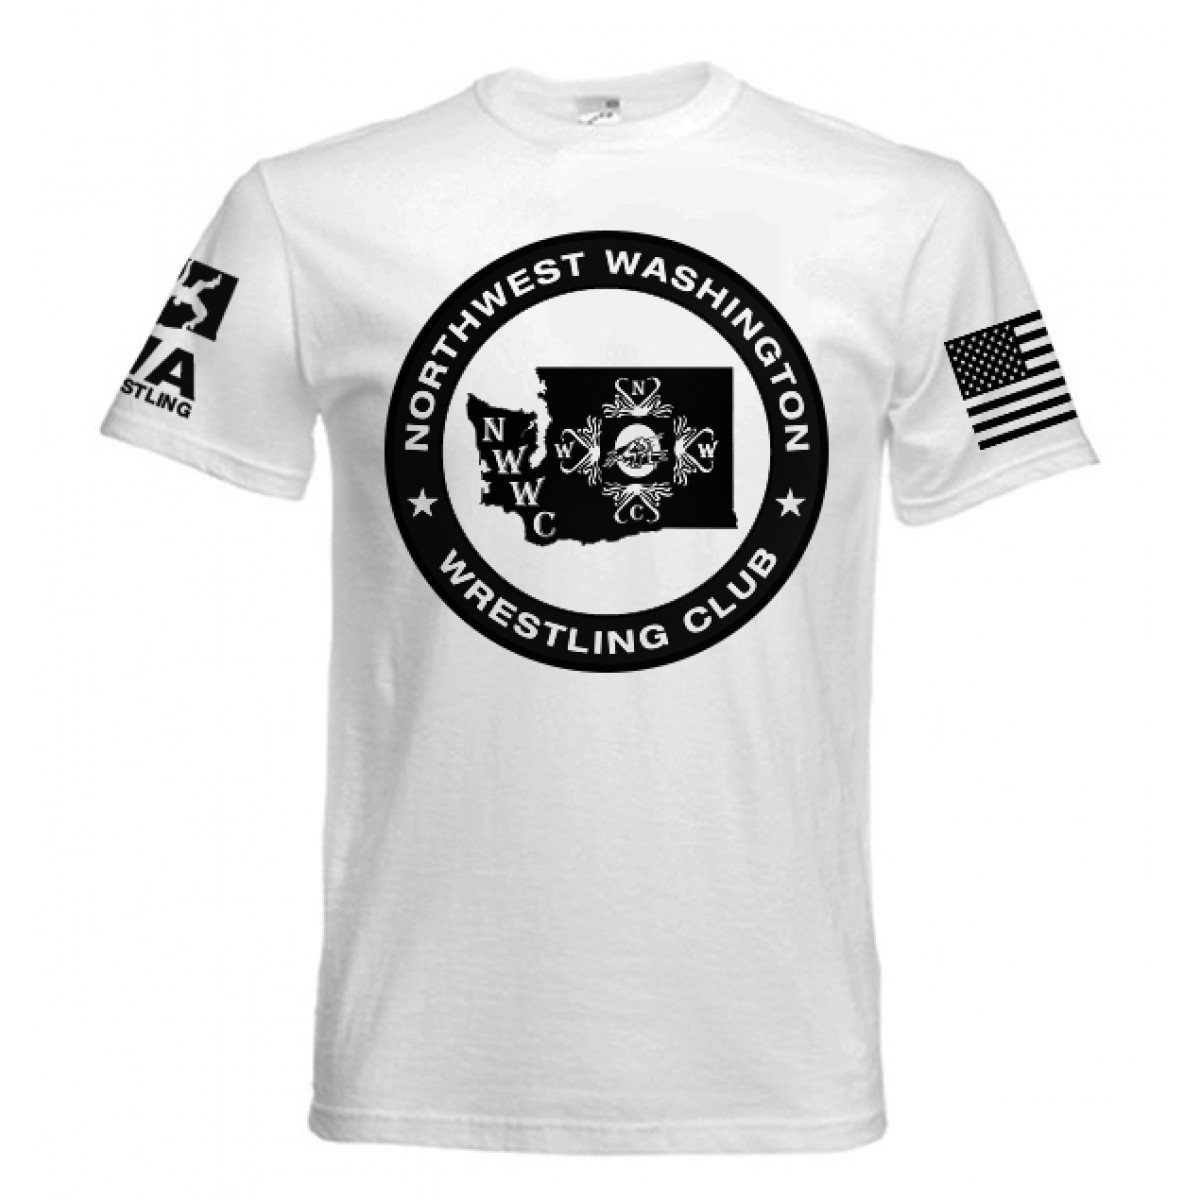 NWWC White T-shirt Black Logo-White-XL